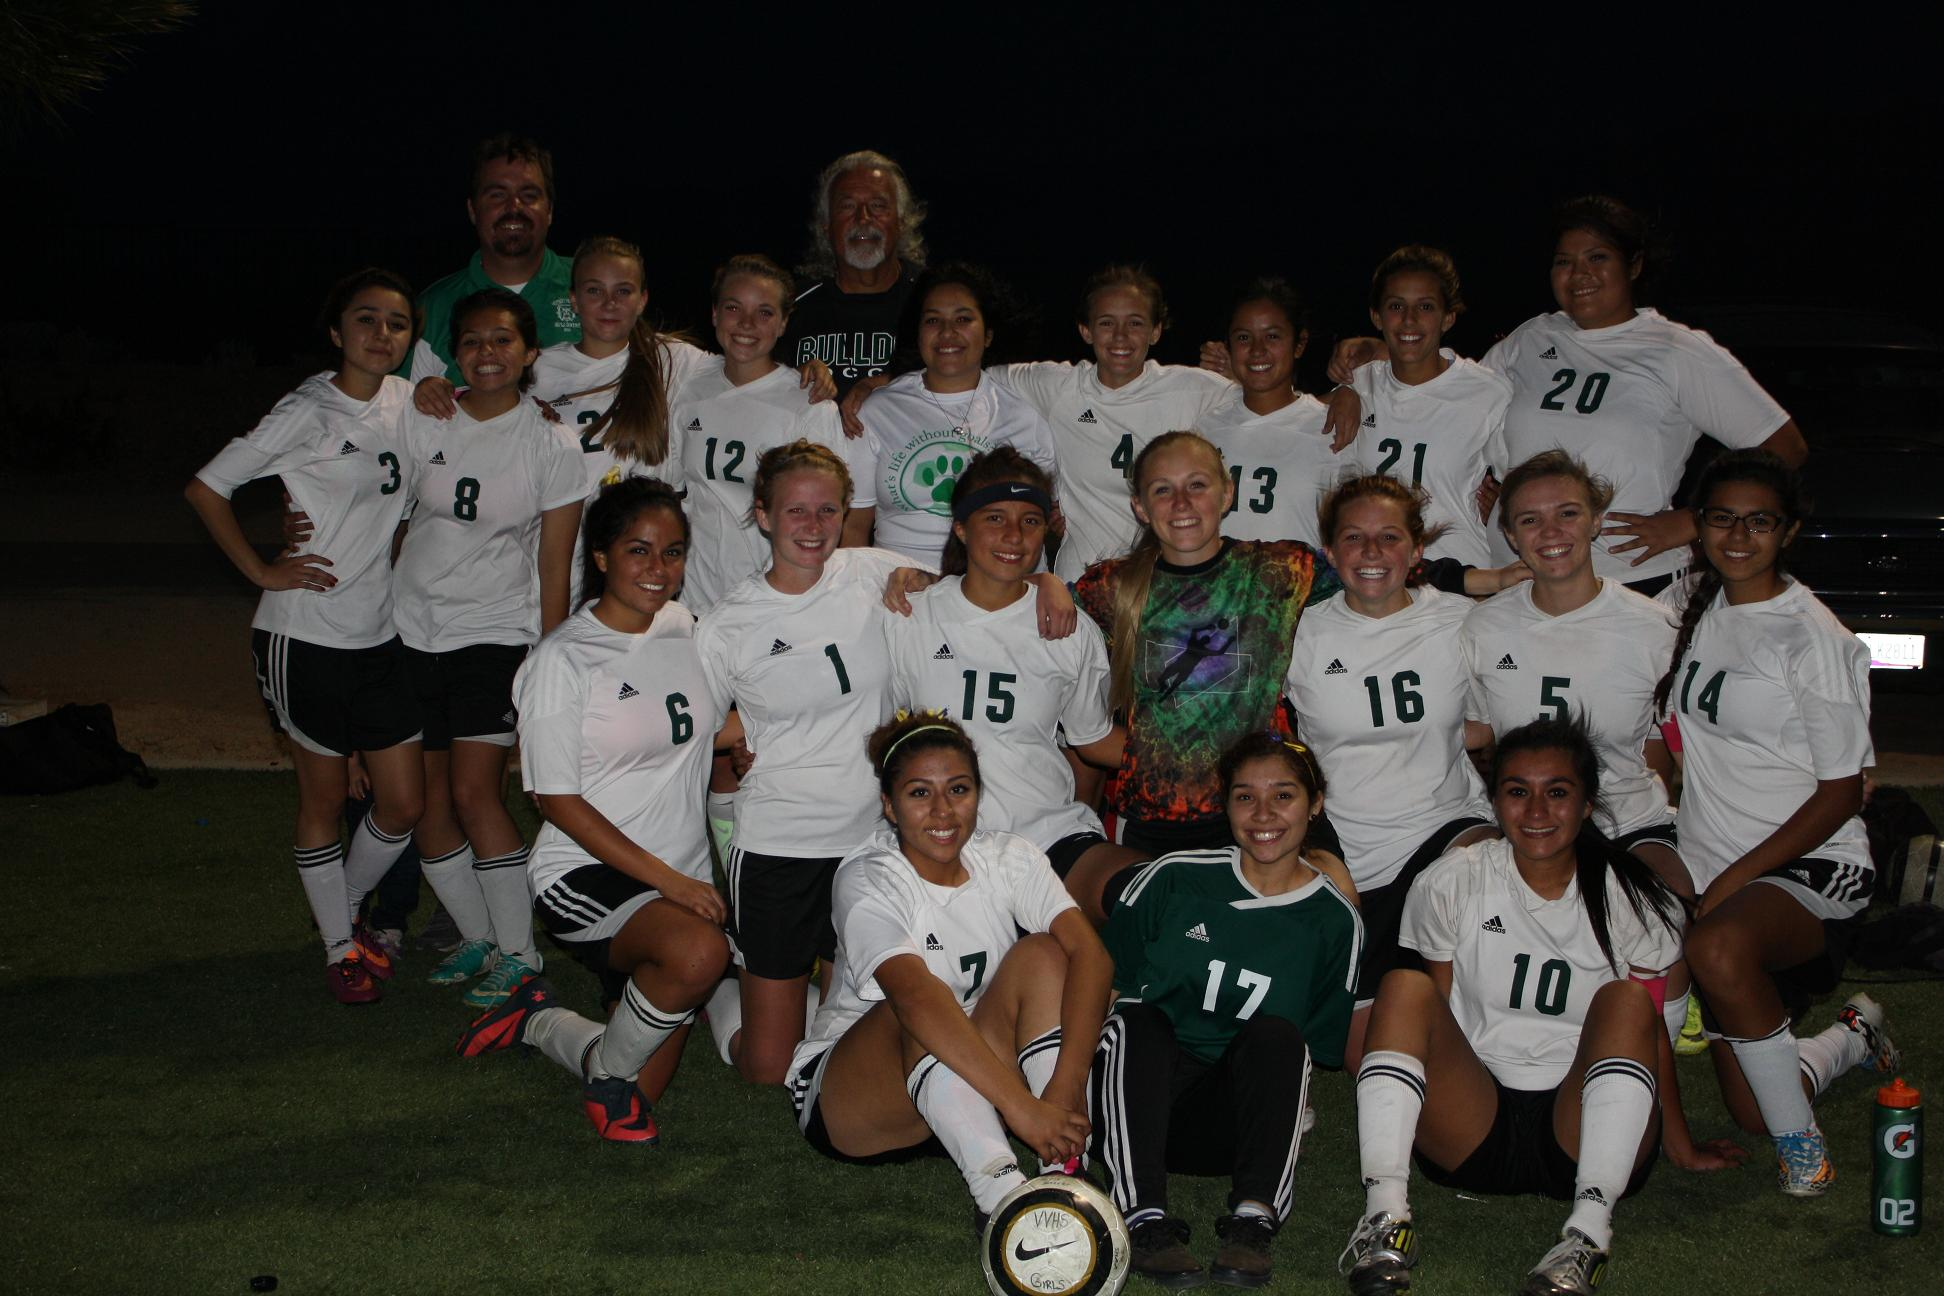 Kokopelli Athlete of the Week: 2014 Girls' Soccer Team